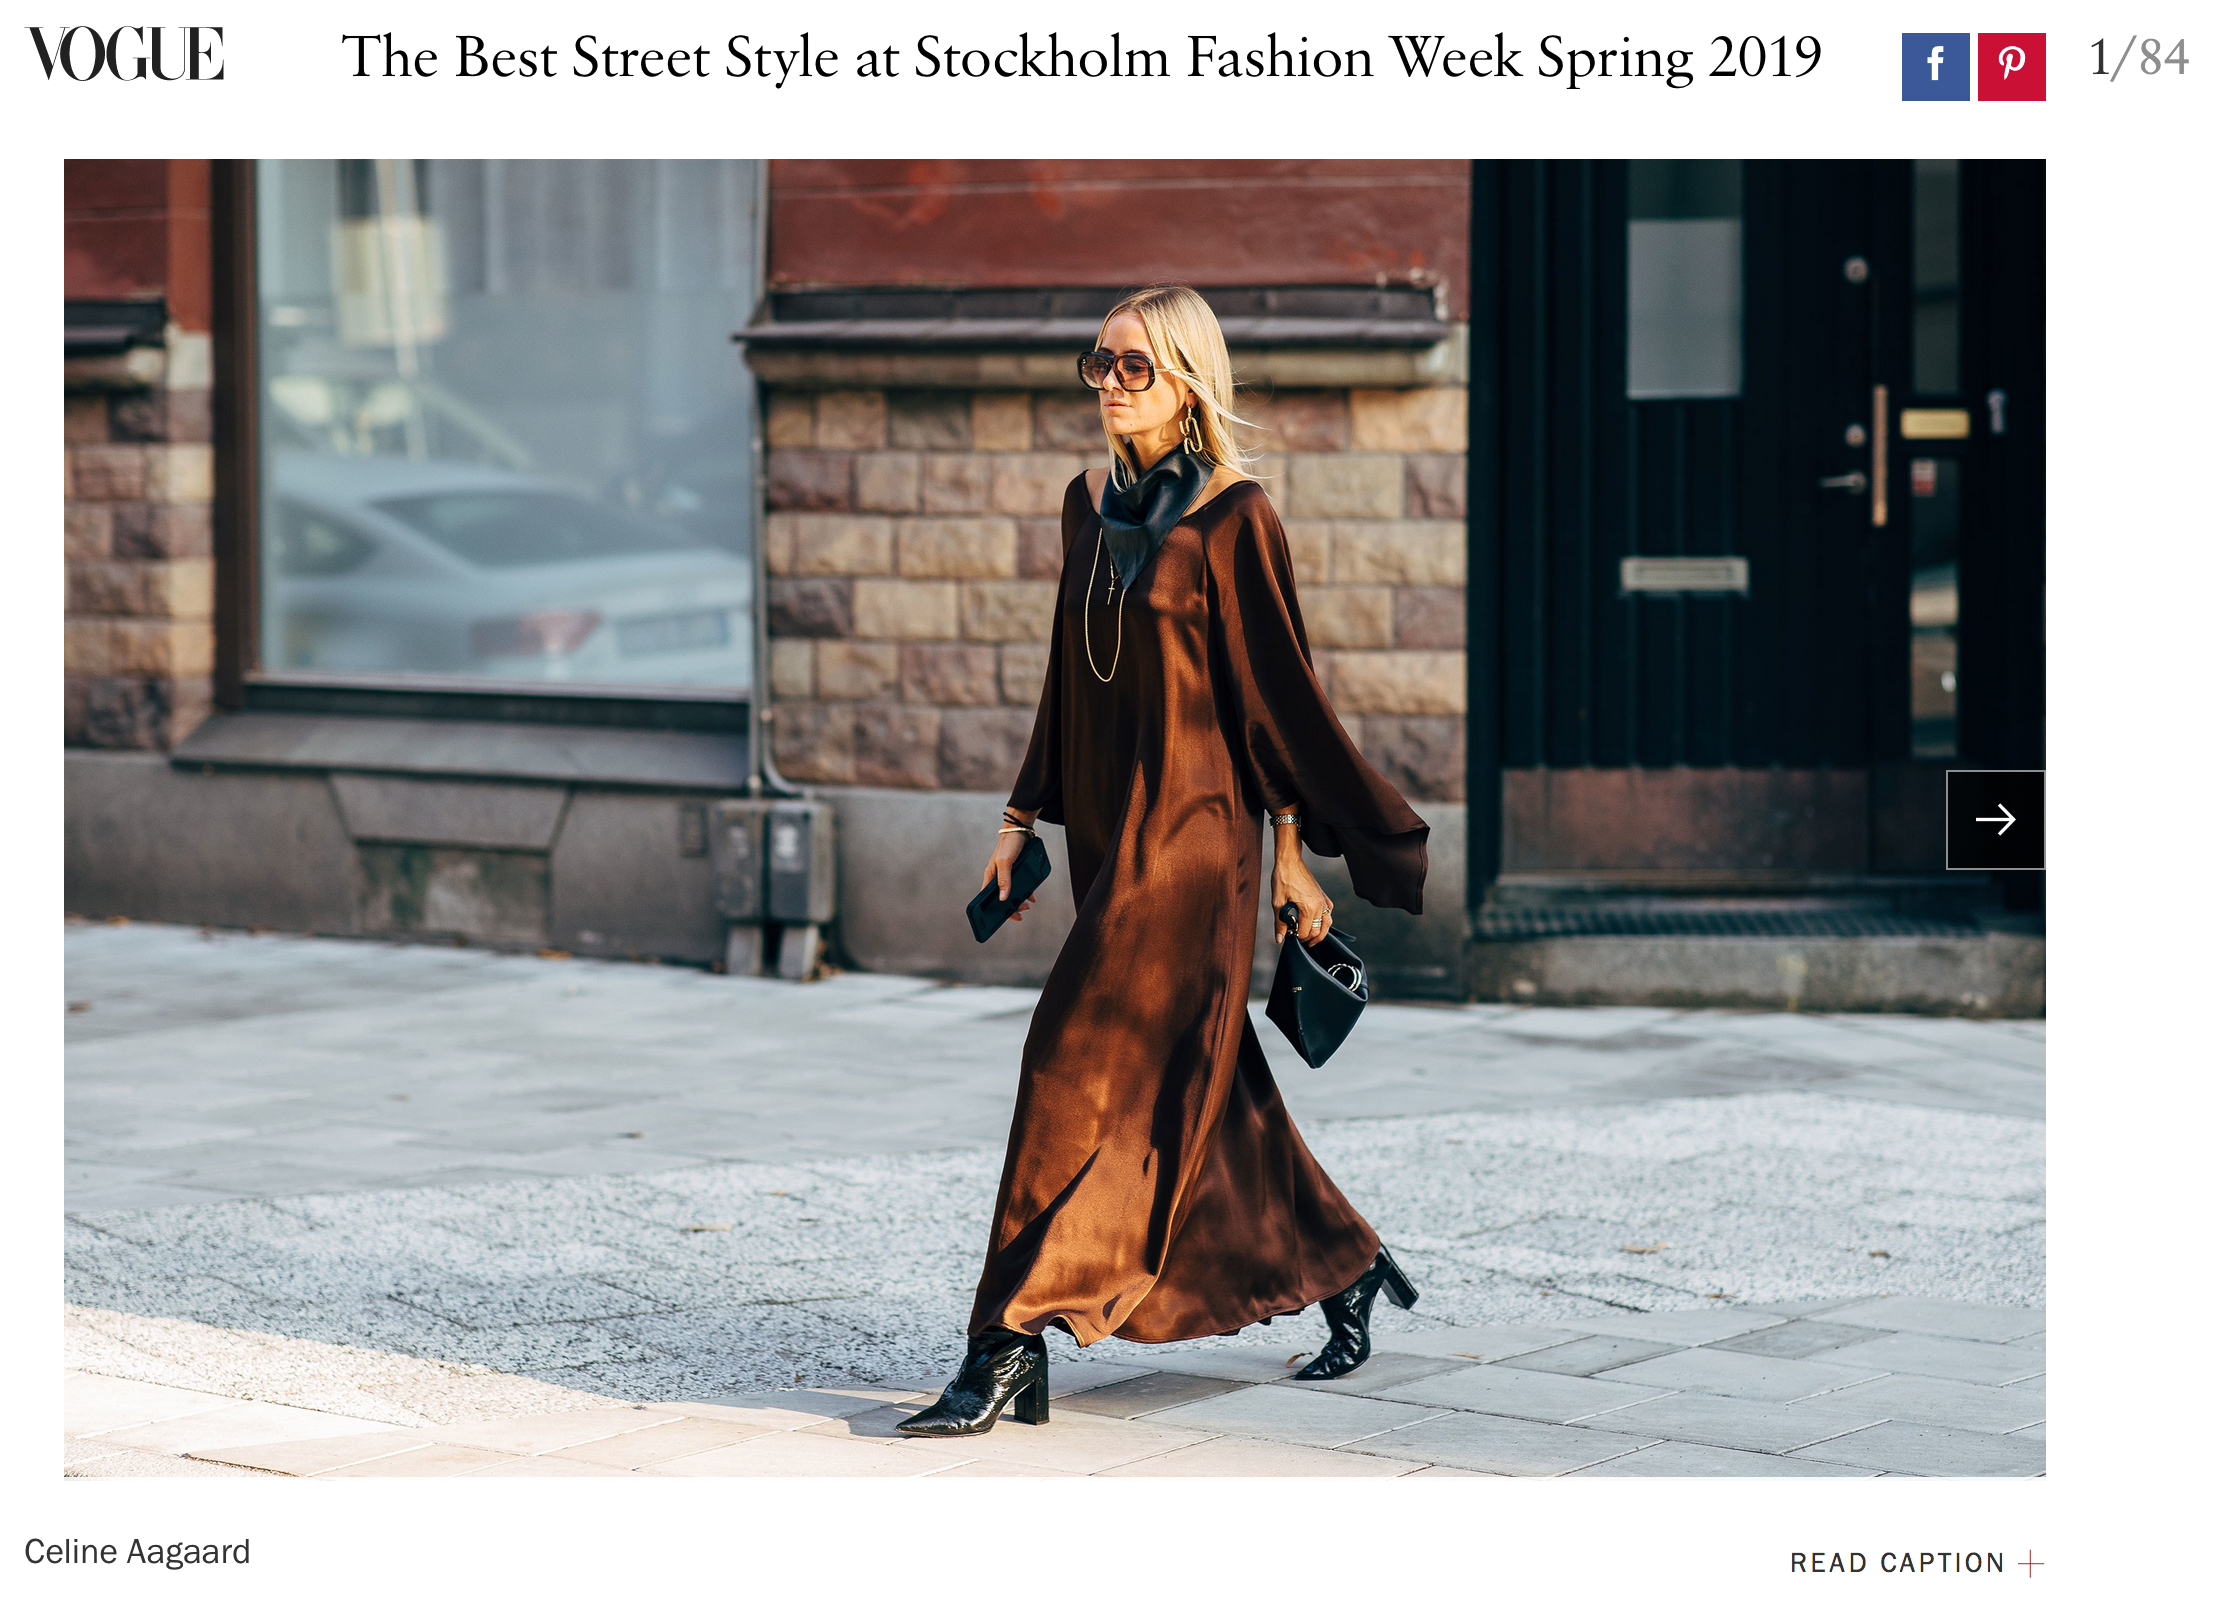 Vogue The Best Street Style At New York Fashion Week Eco Logic